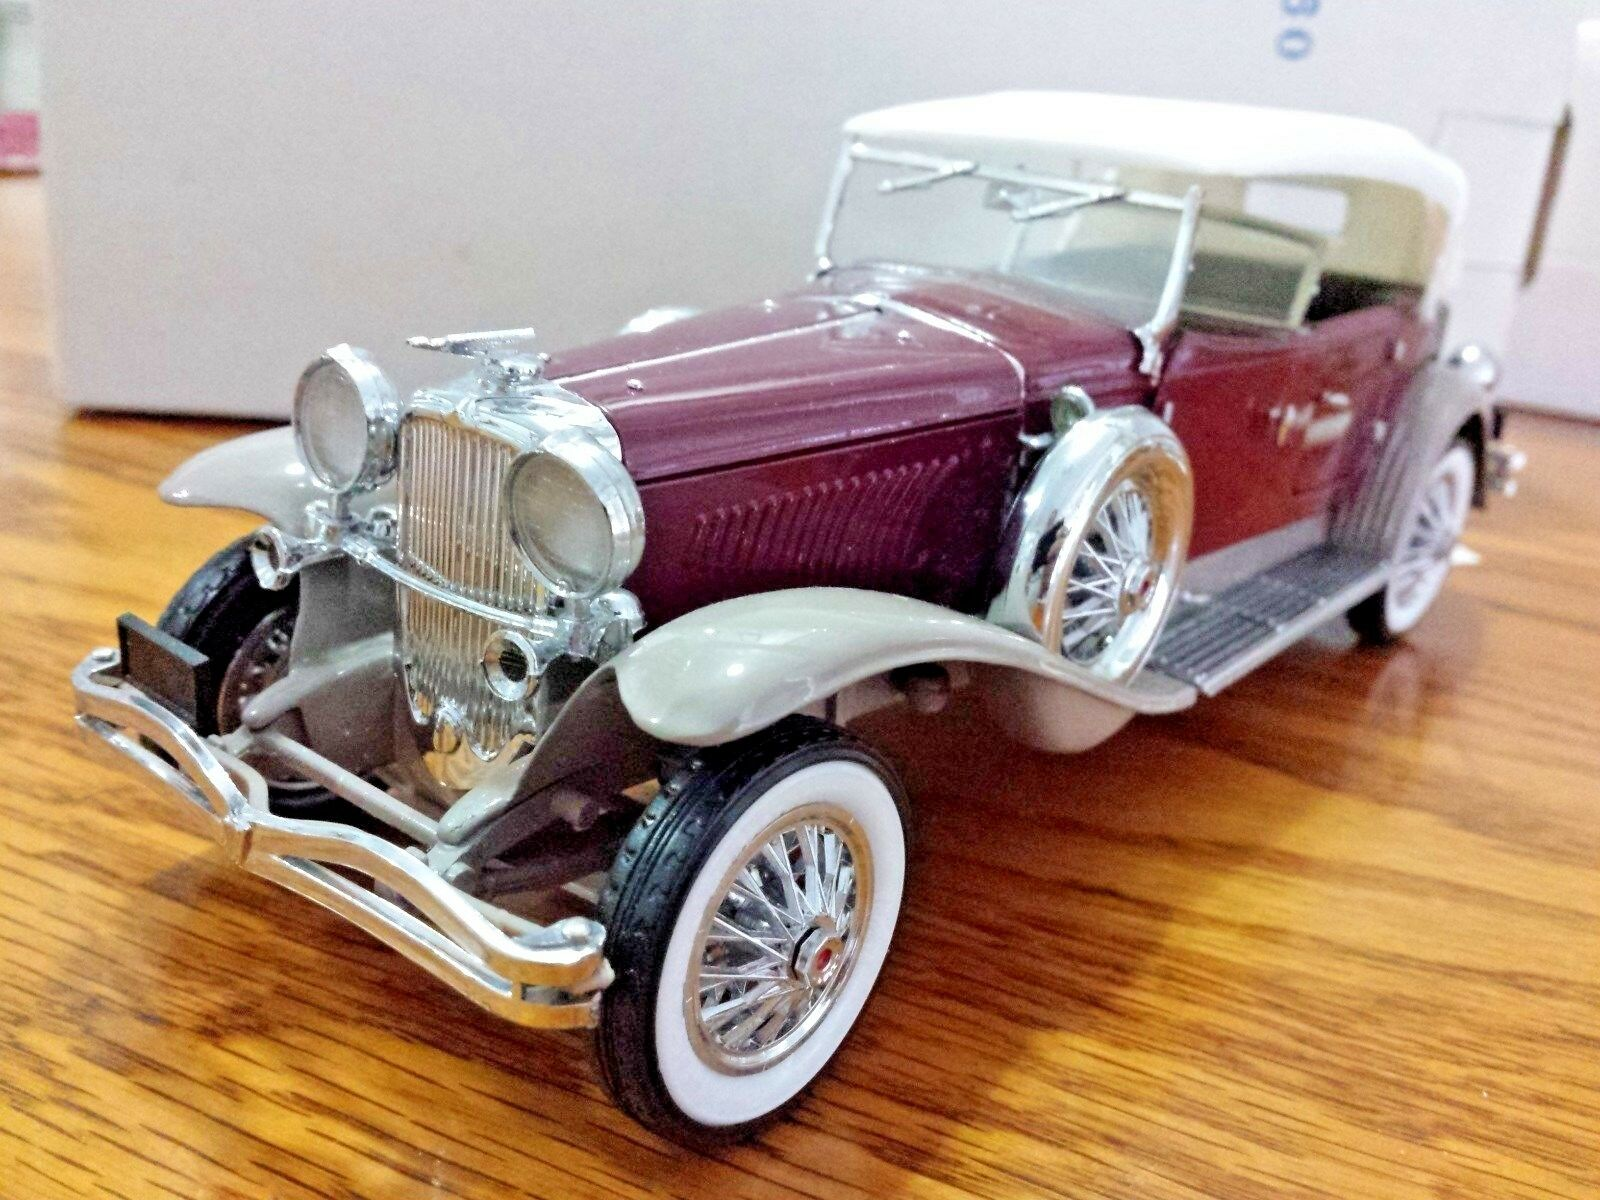 i nuovi marchi outlet online Franklin Mint Duesenberg Duesenberg Duesenberg J 1930 Derham Tourster 1 24 Scale Diecast B11KD09  A125  comprare sconti